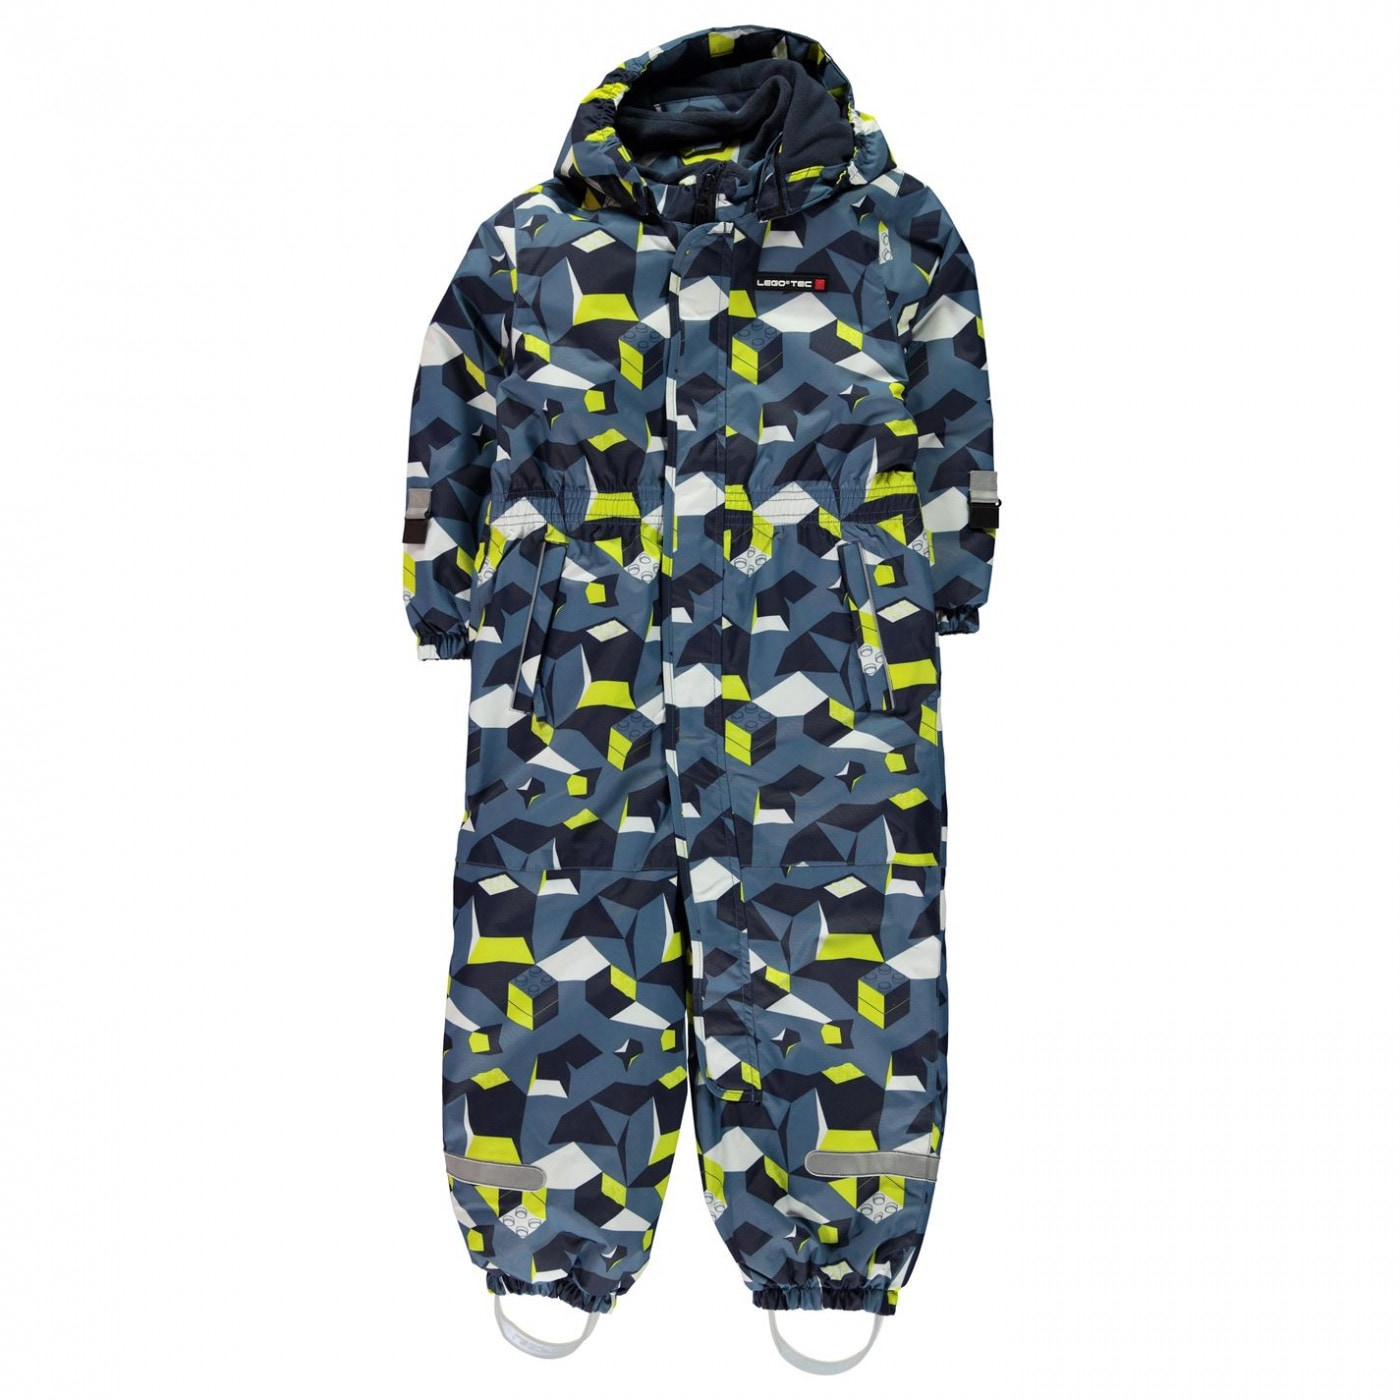 Lego Wear Jaxon 772 Snowsuit Infant Boys